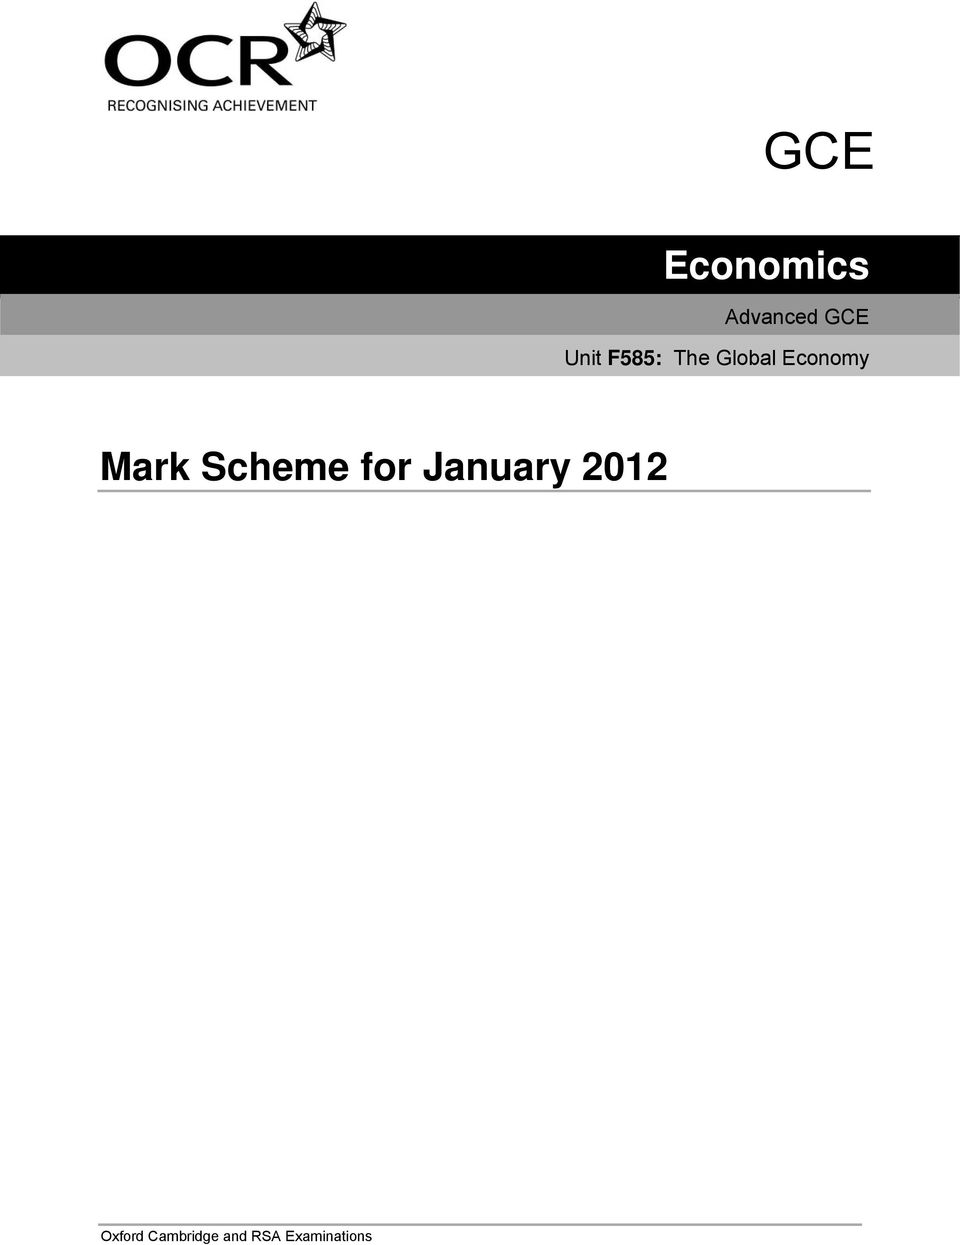 Mark scheme geography cambridge university gce